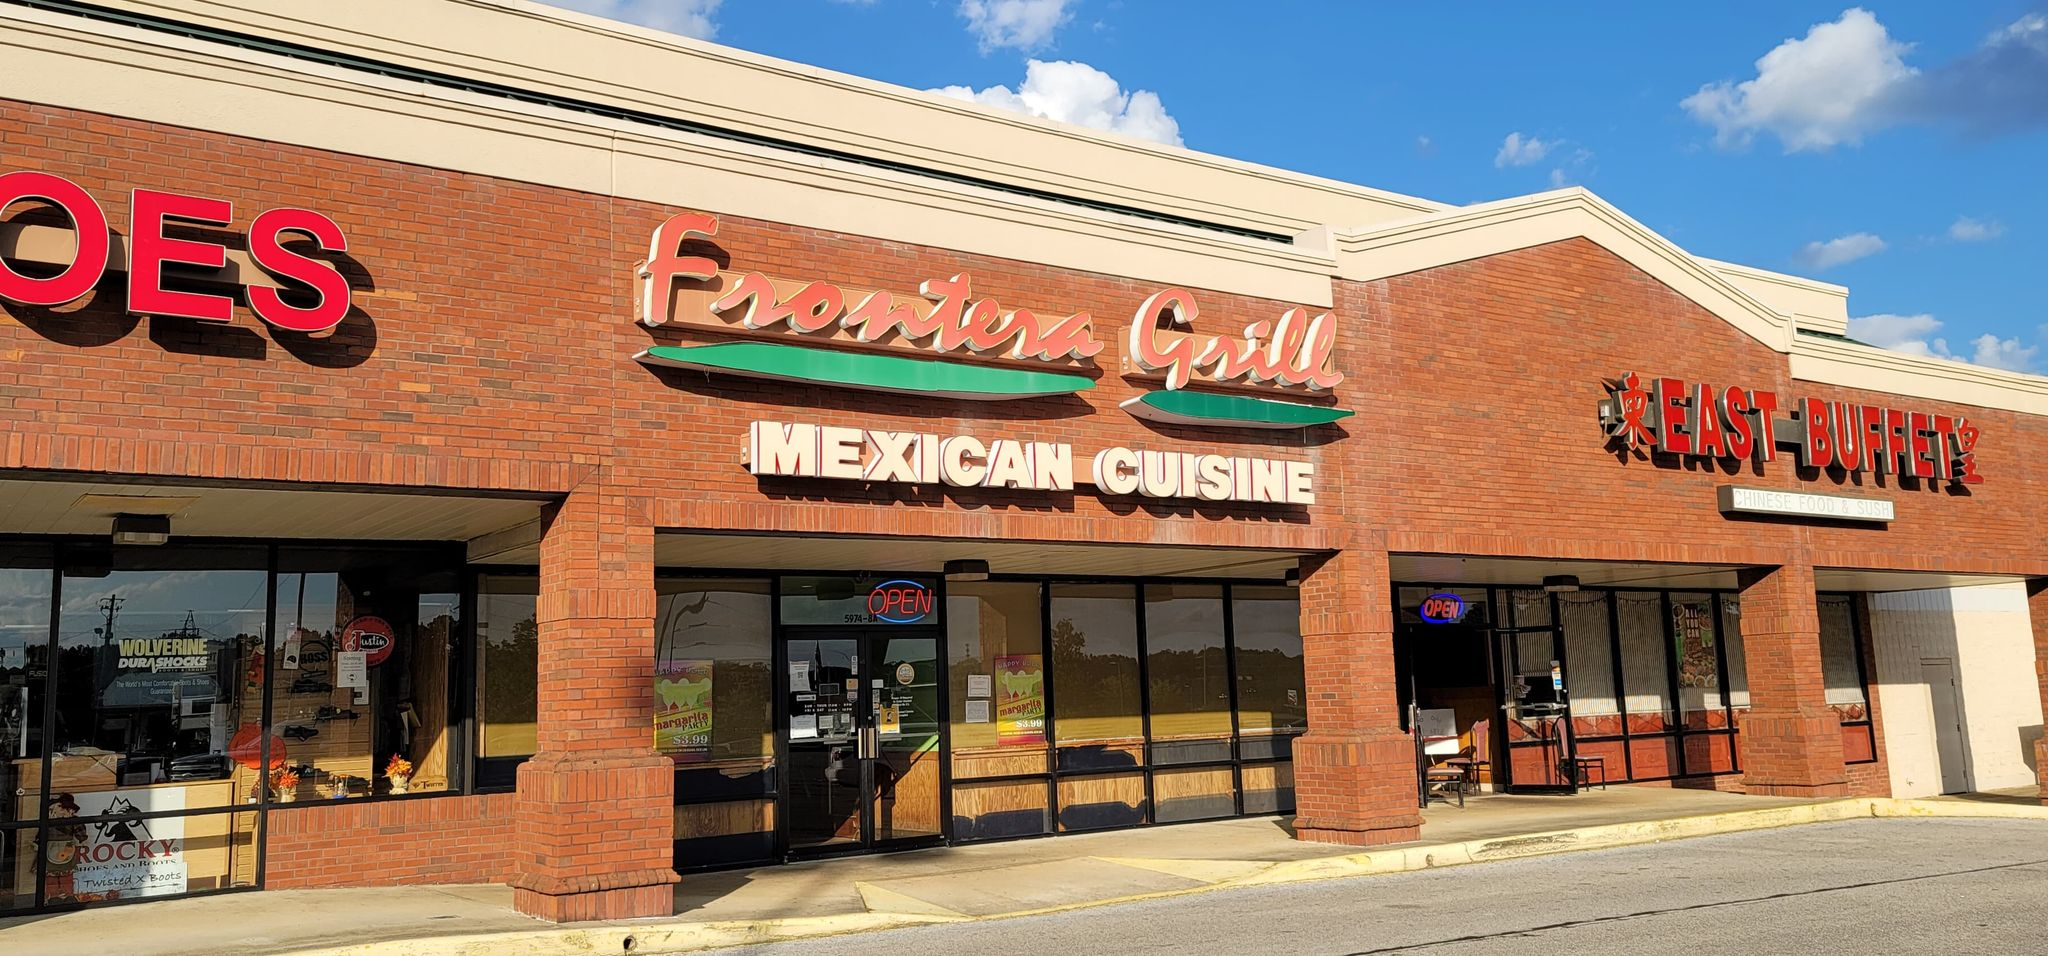 Frontera Grill in Trussville closing, leaving another empty storefront in Trussville Shopping Center